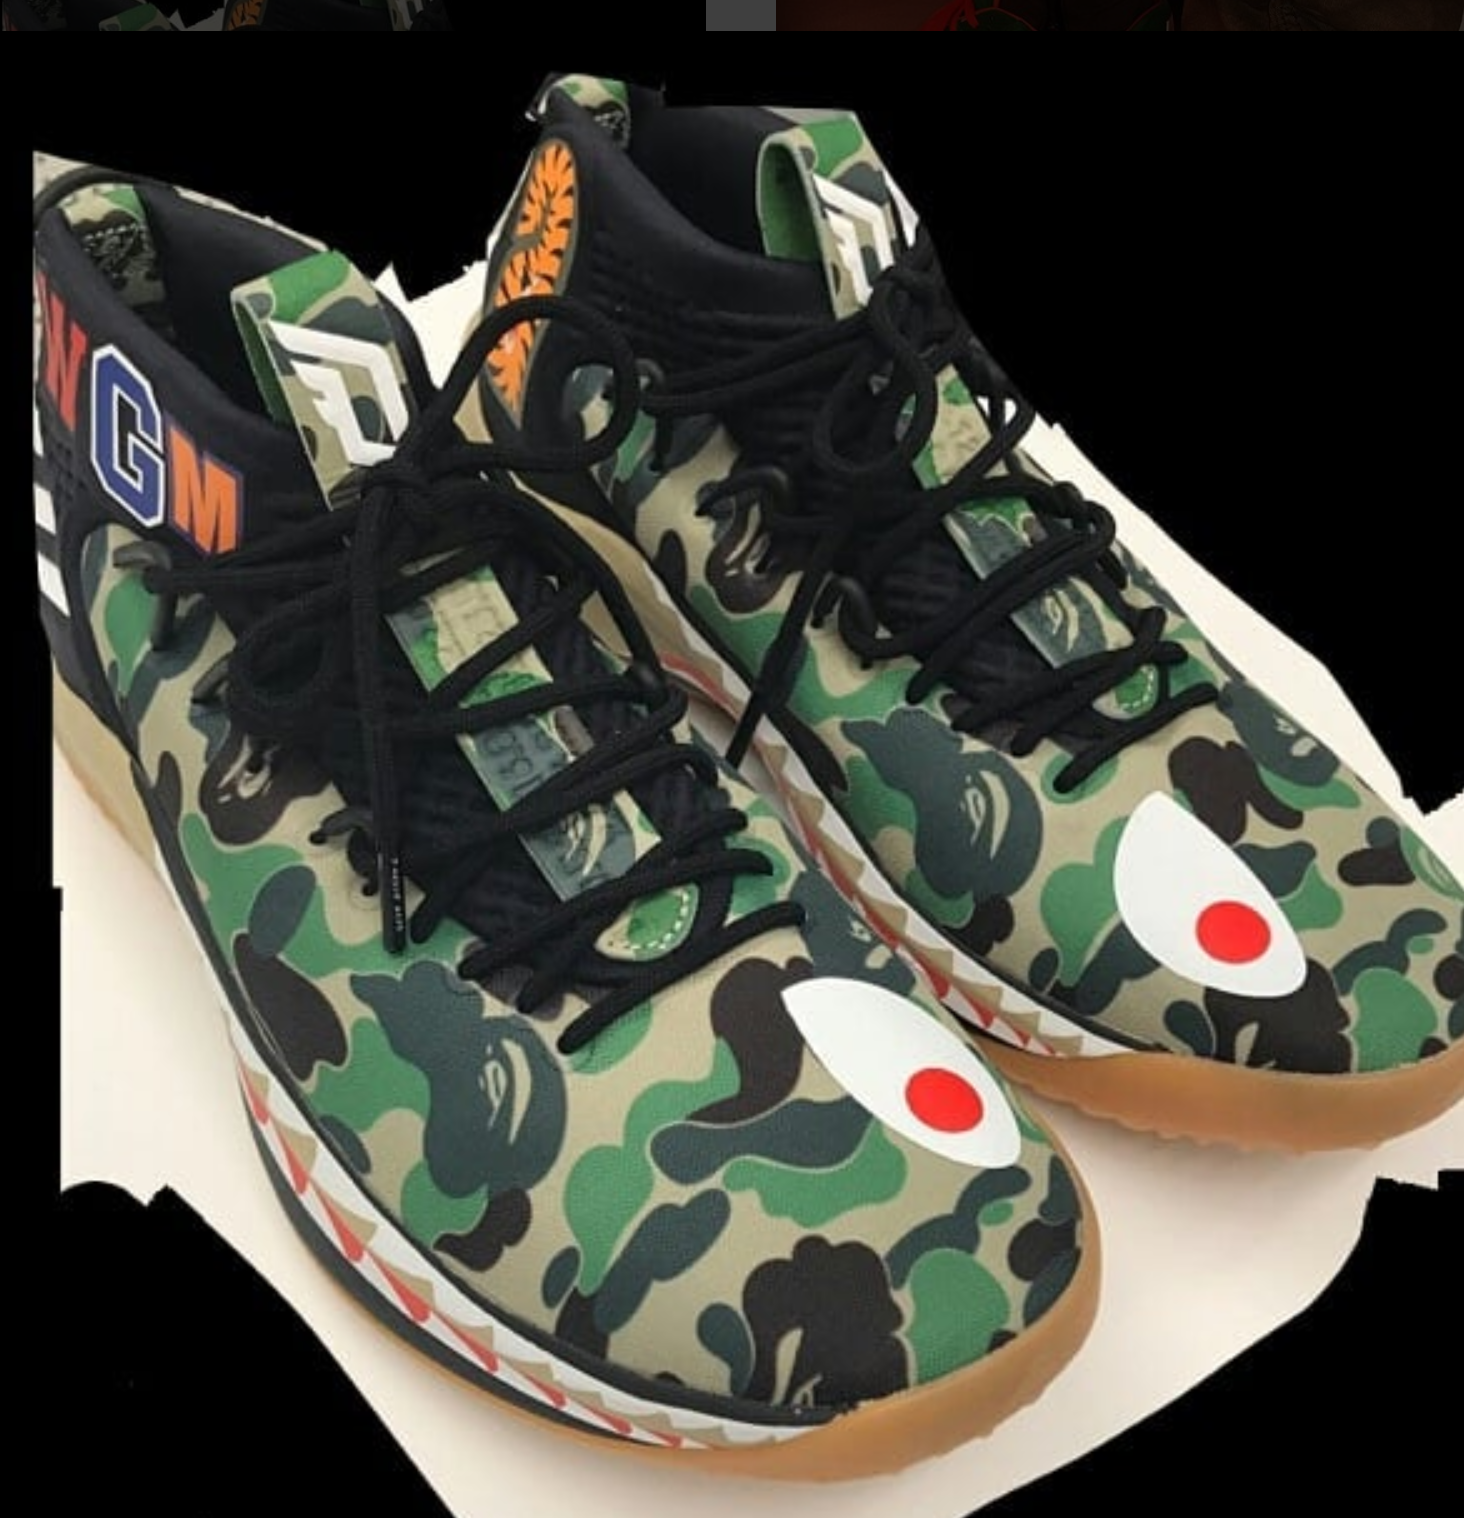 official photos 2a021 0aac8 ... This Could Be One of the BAPE Dame 4 Colorways - WearTesters ...